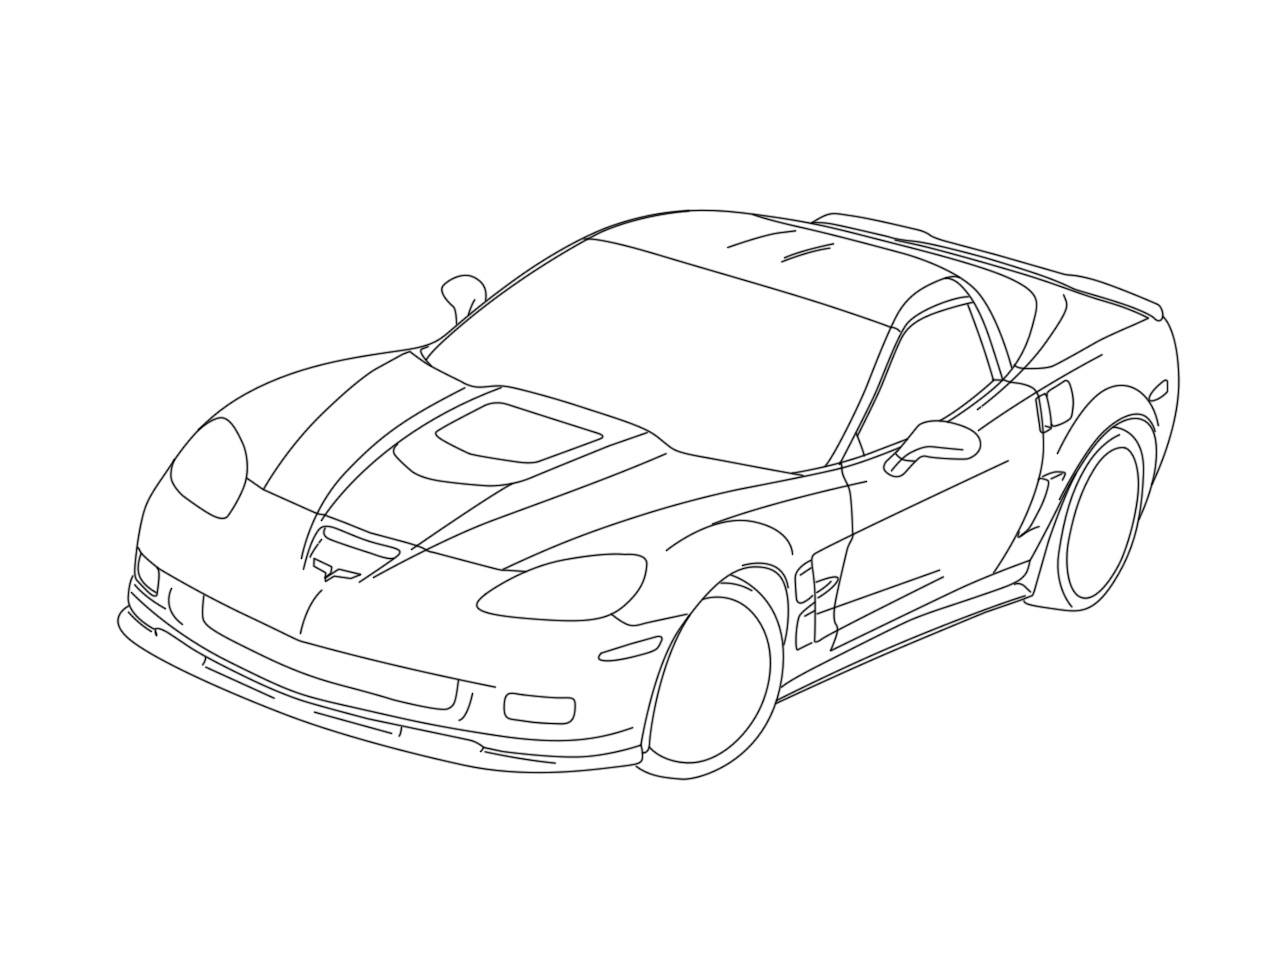 Chevrolet Corvette Drawing At Getdrawings Com Free For